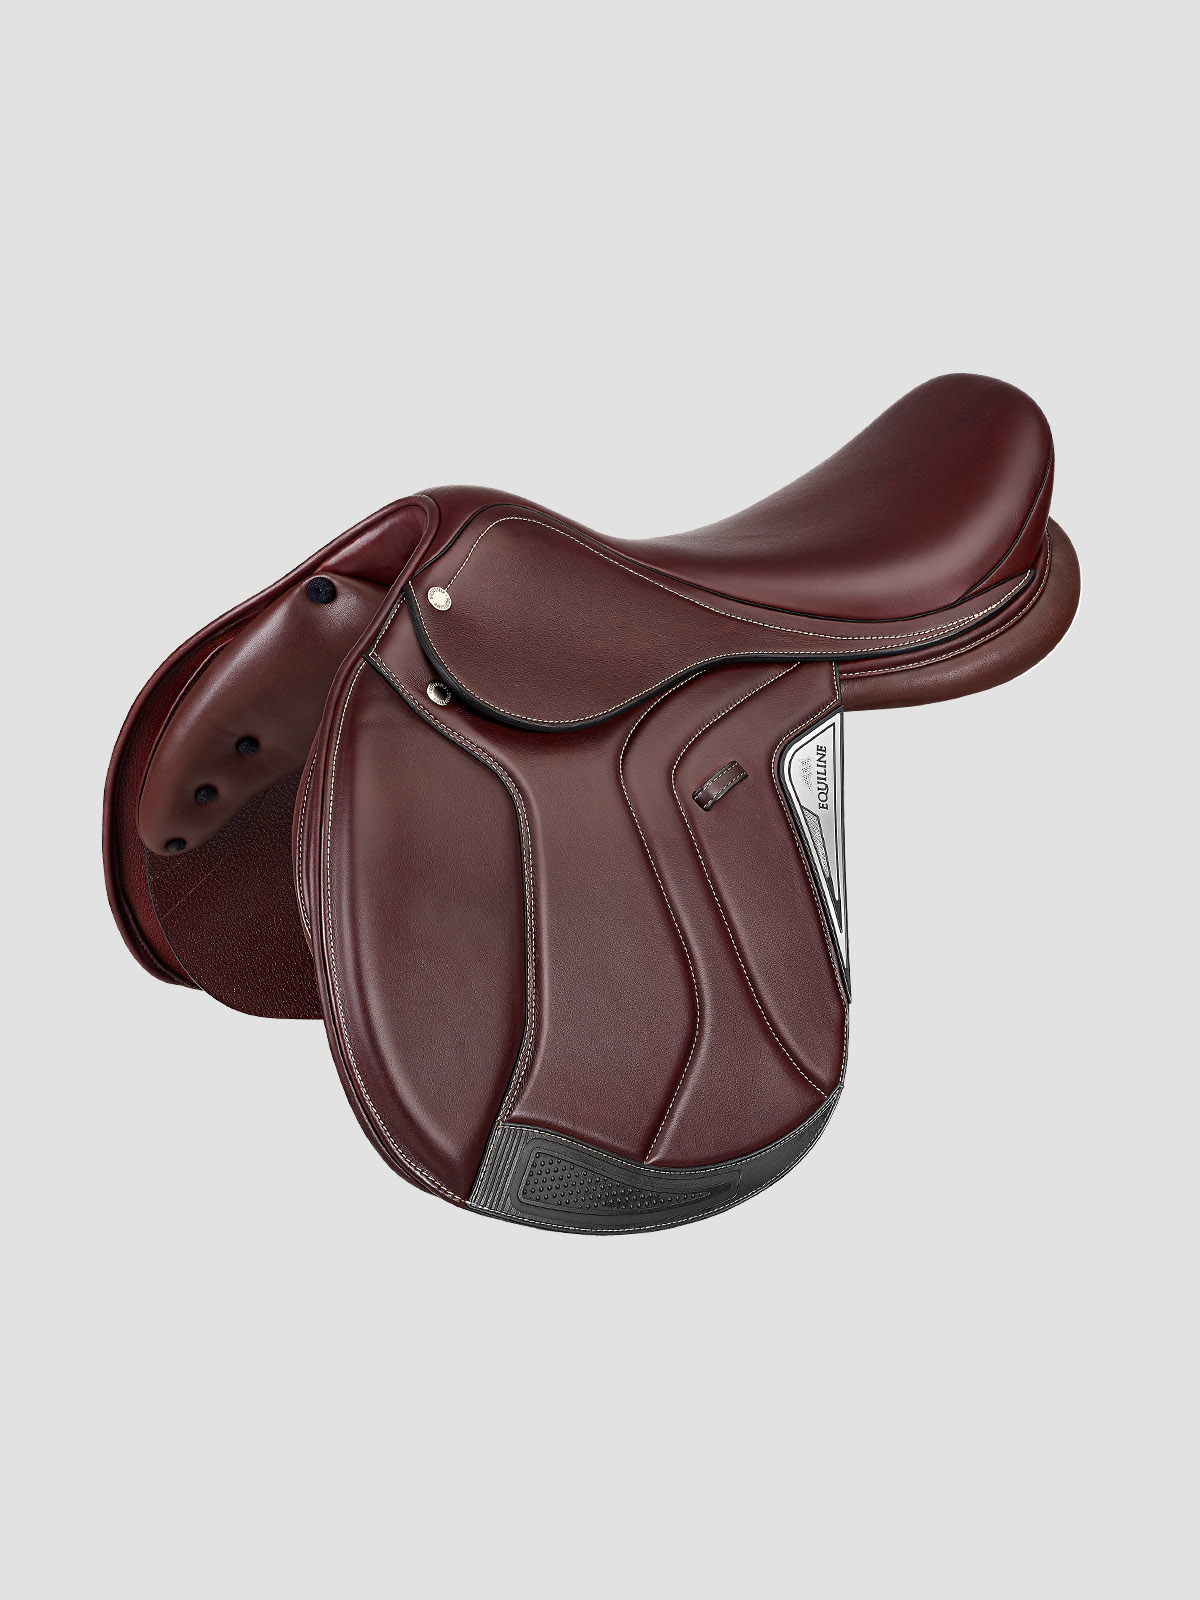 Equiline American Jumper Saddle in brown